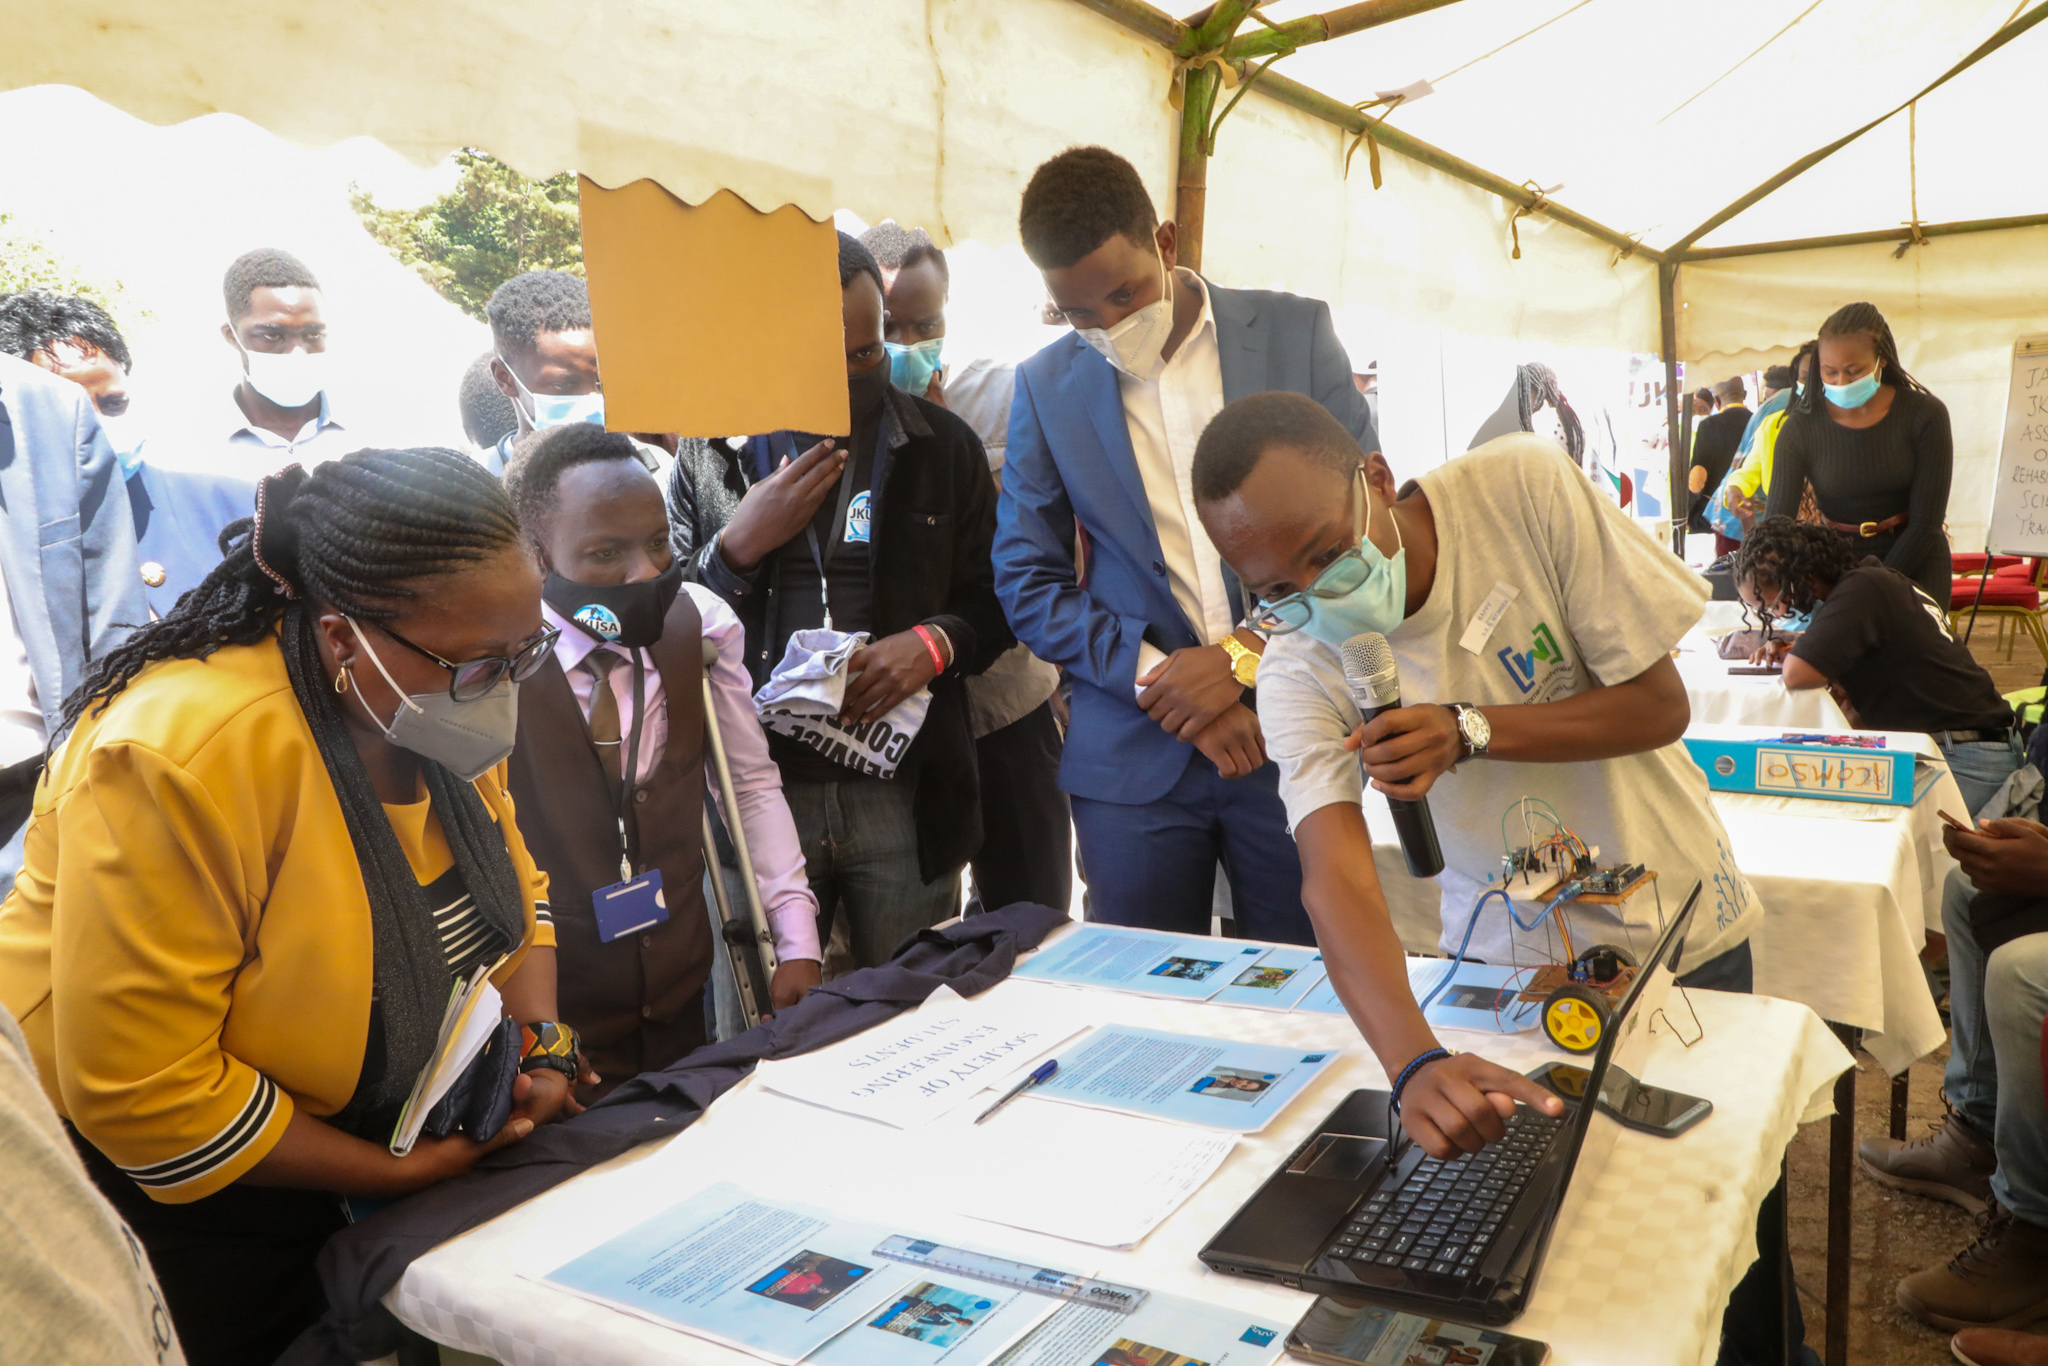 Jeff Mboya a member of the Society of Engineering Students (SES) showcasing their project to the Vice Chancellor, Prof. Victoria Ngumi.